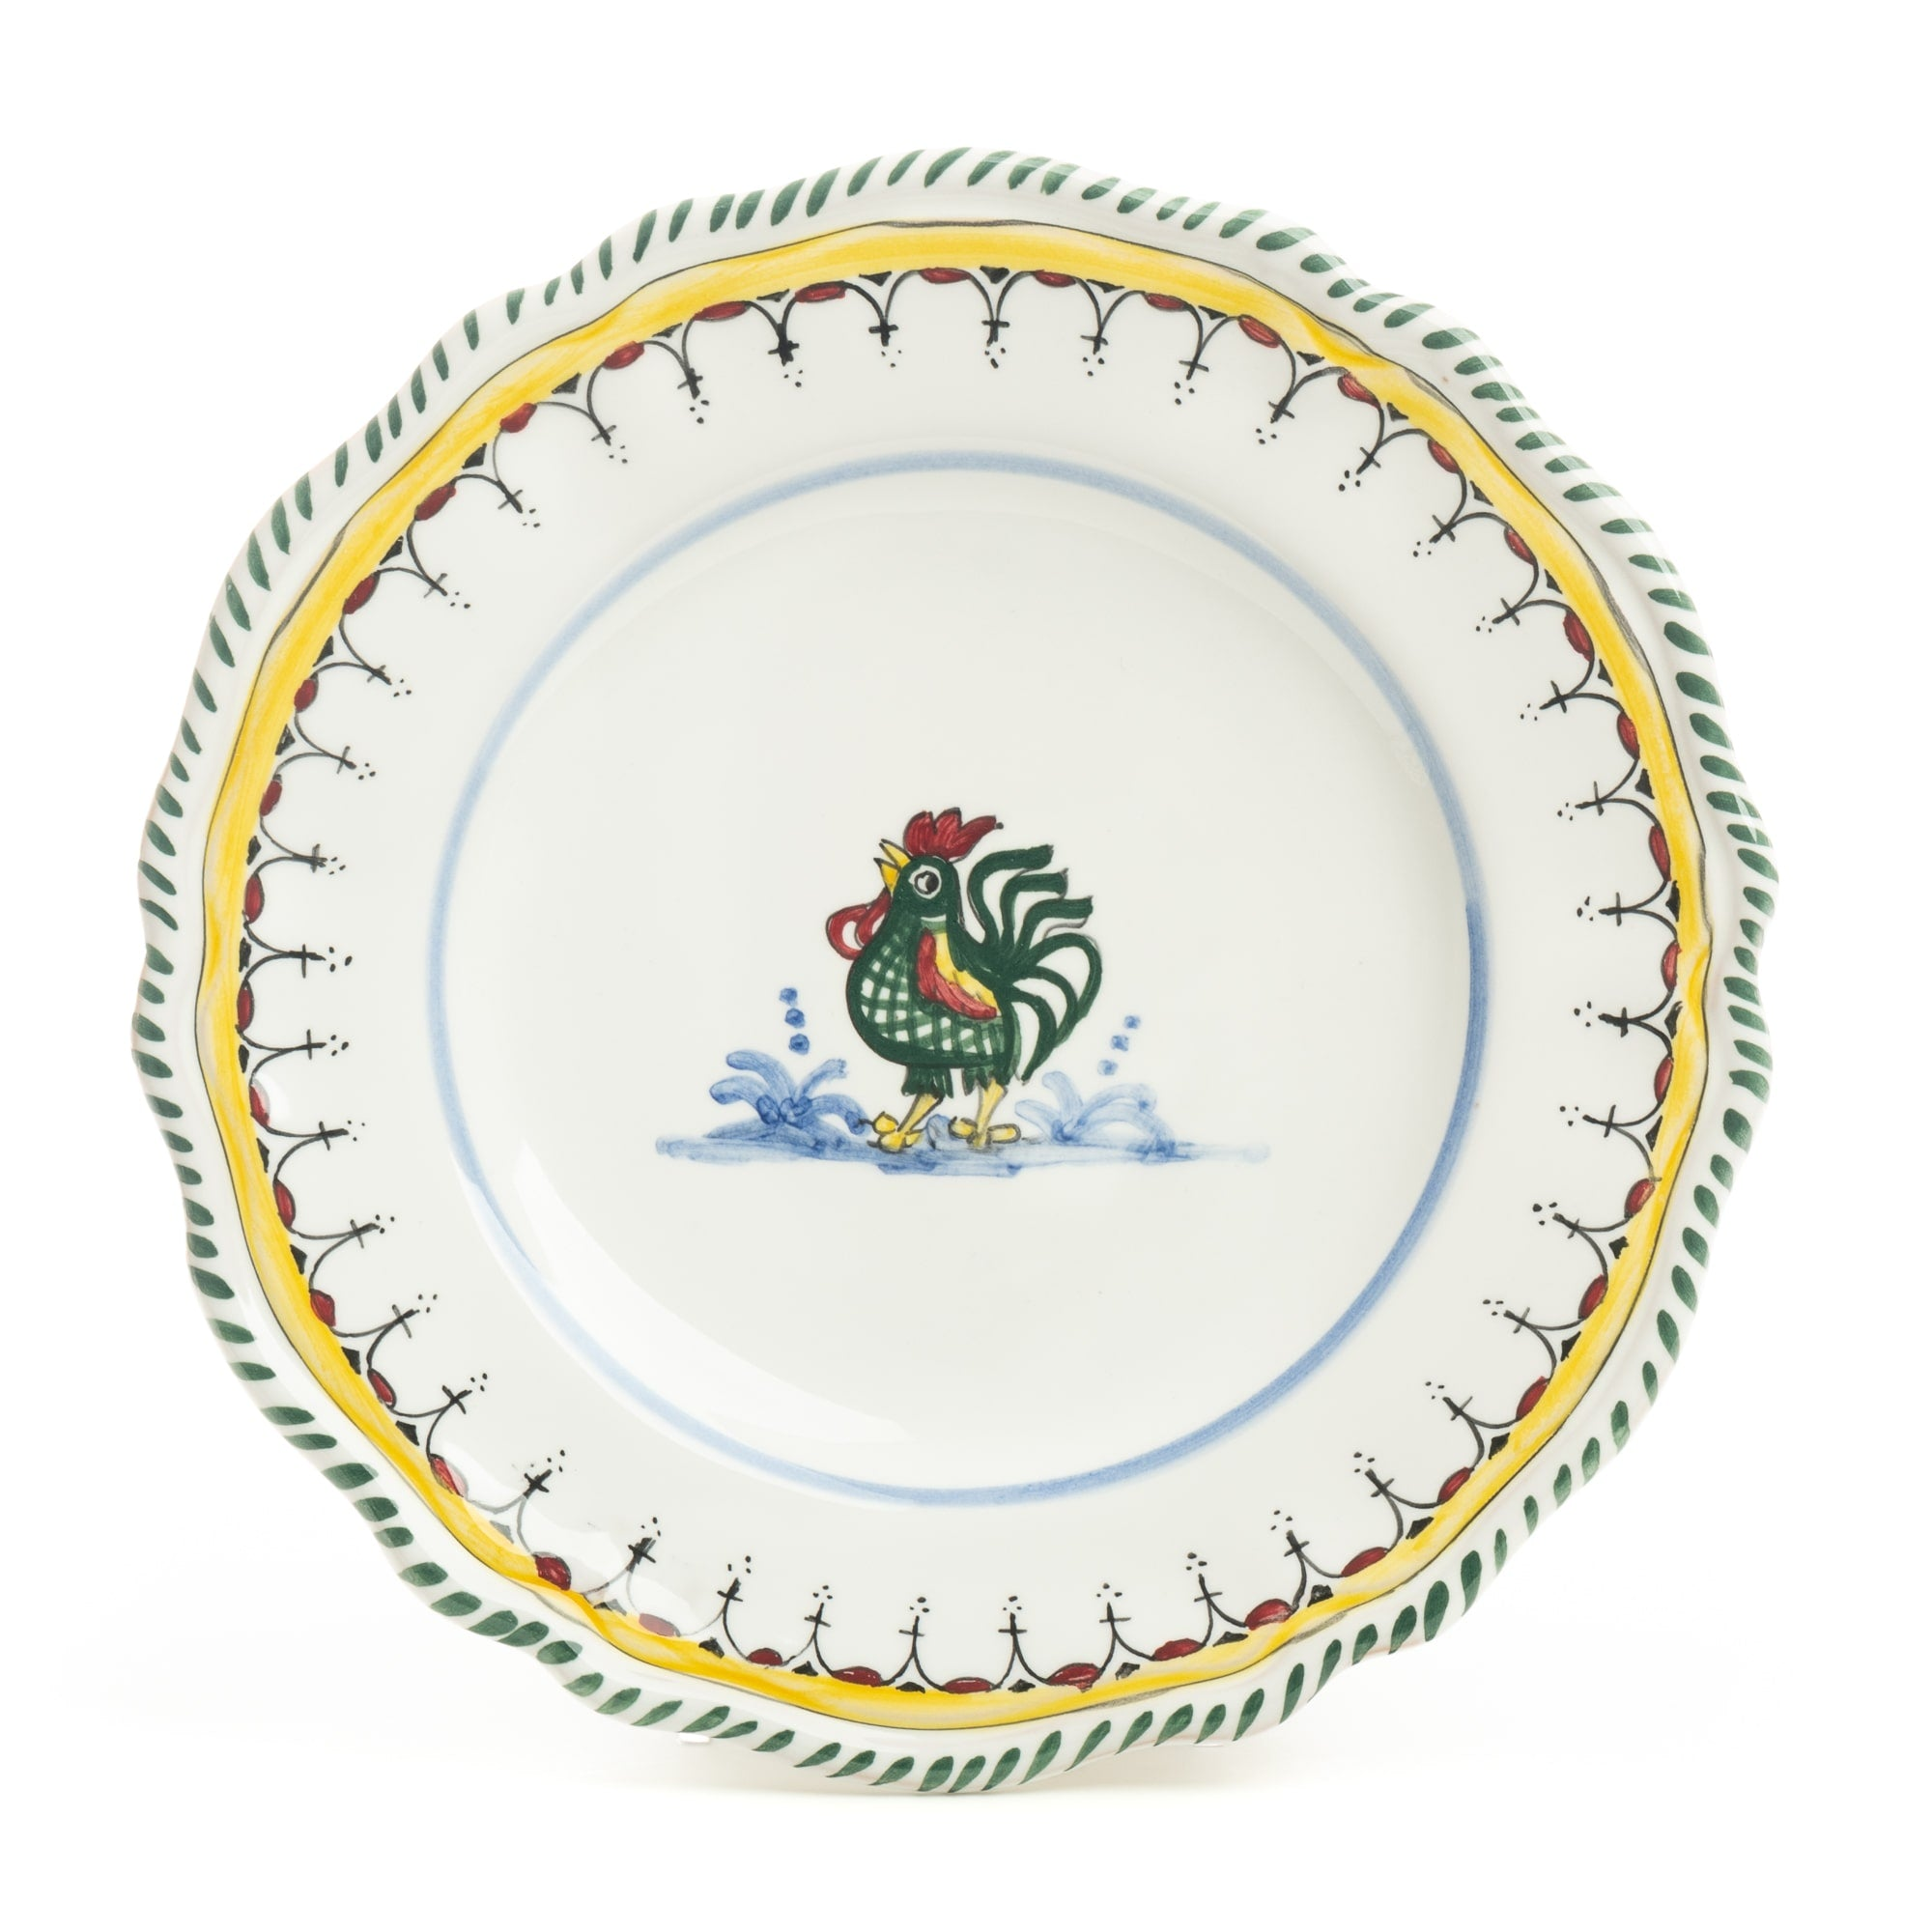 Orvieto Salad Plate, Simplified Design